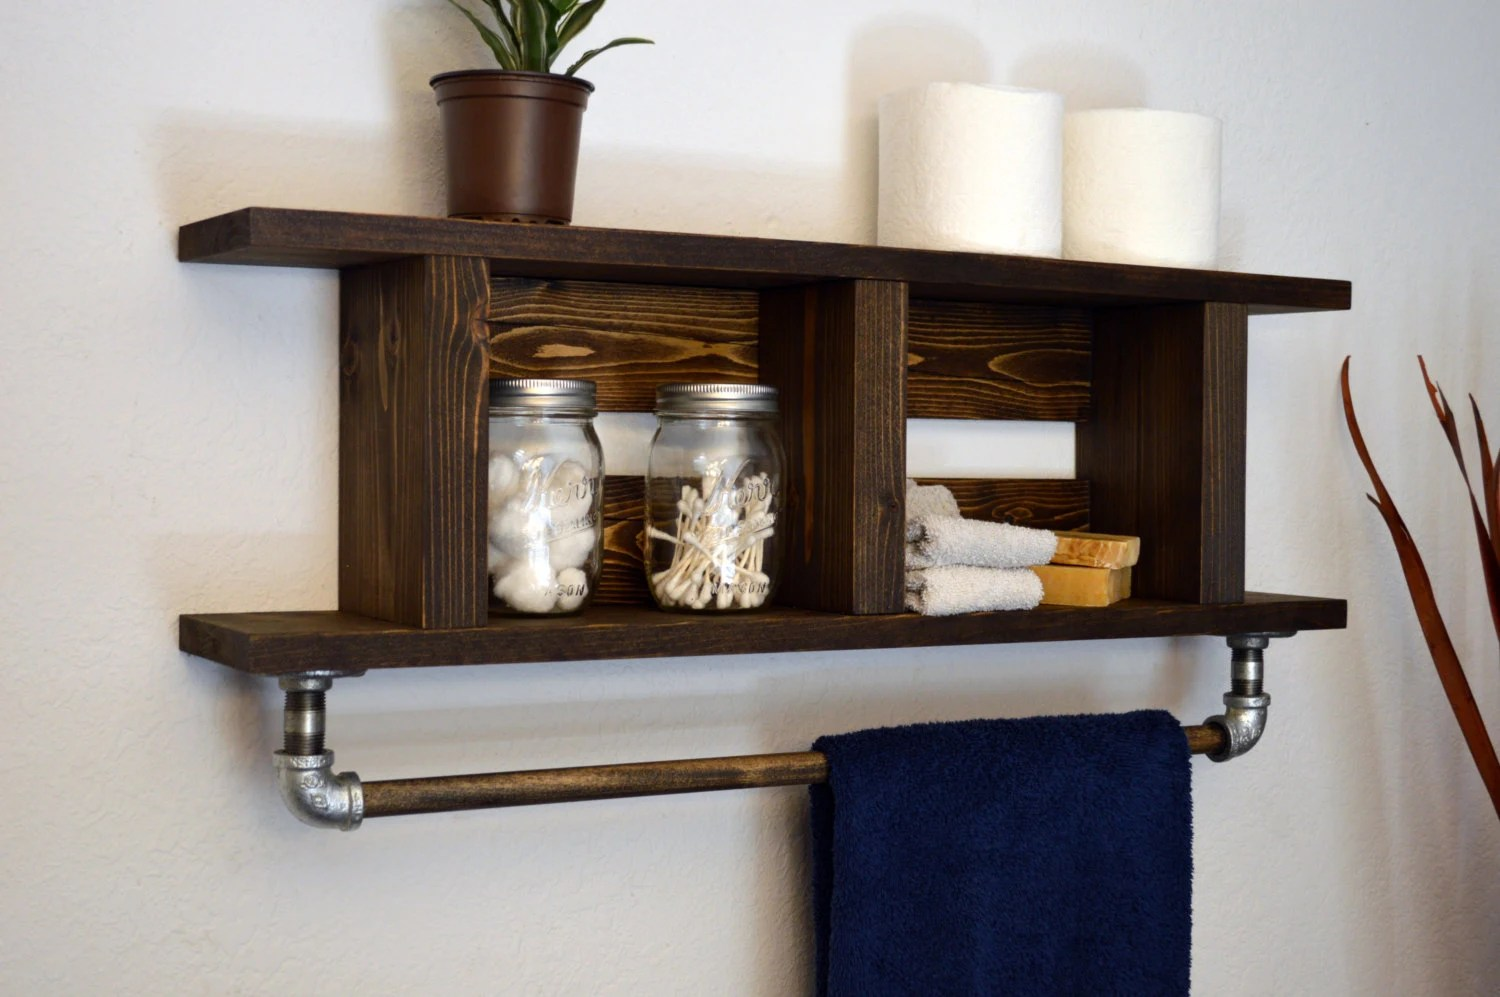 Holz Handtuchhalter Rustic Modern Bathroom Wood Towel Bar 2 Tier By